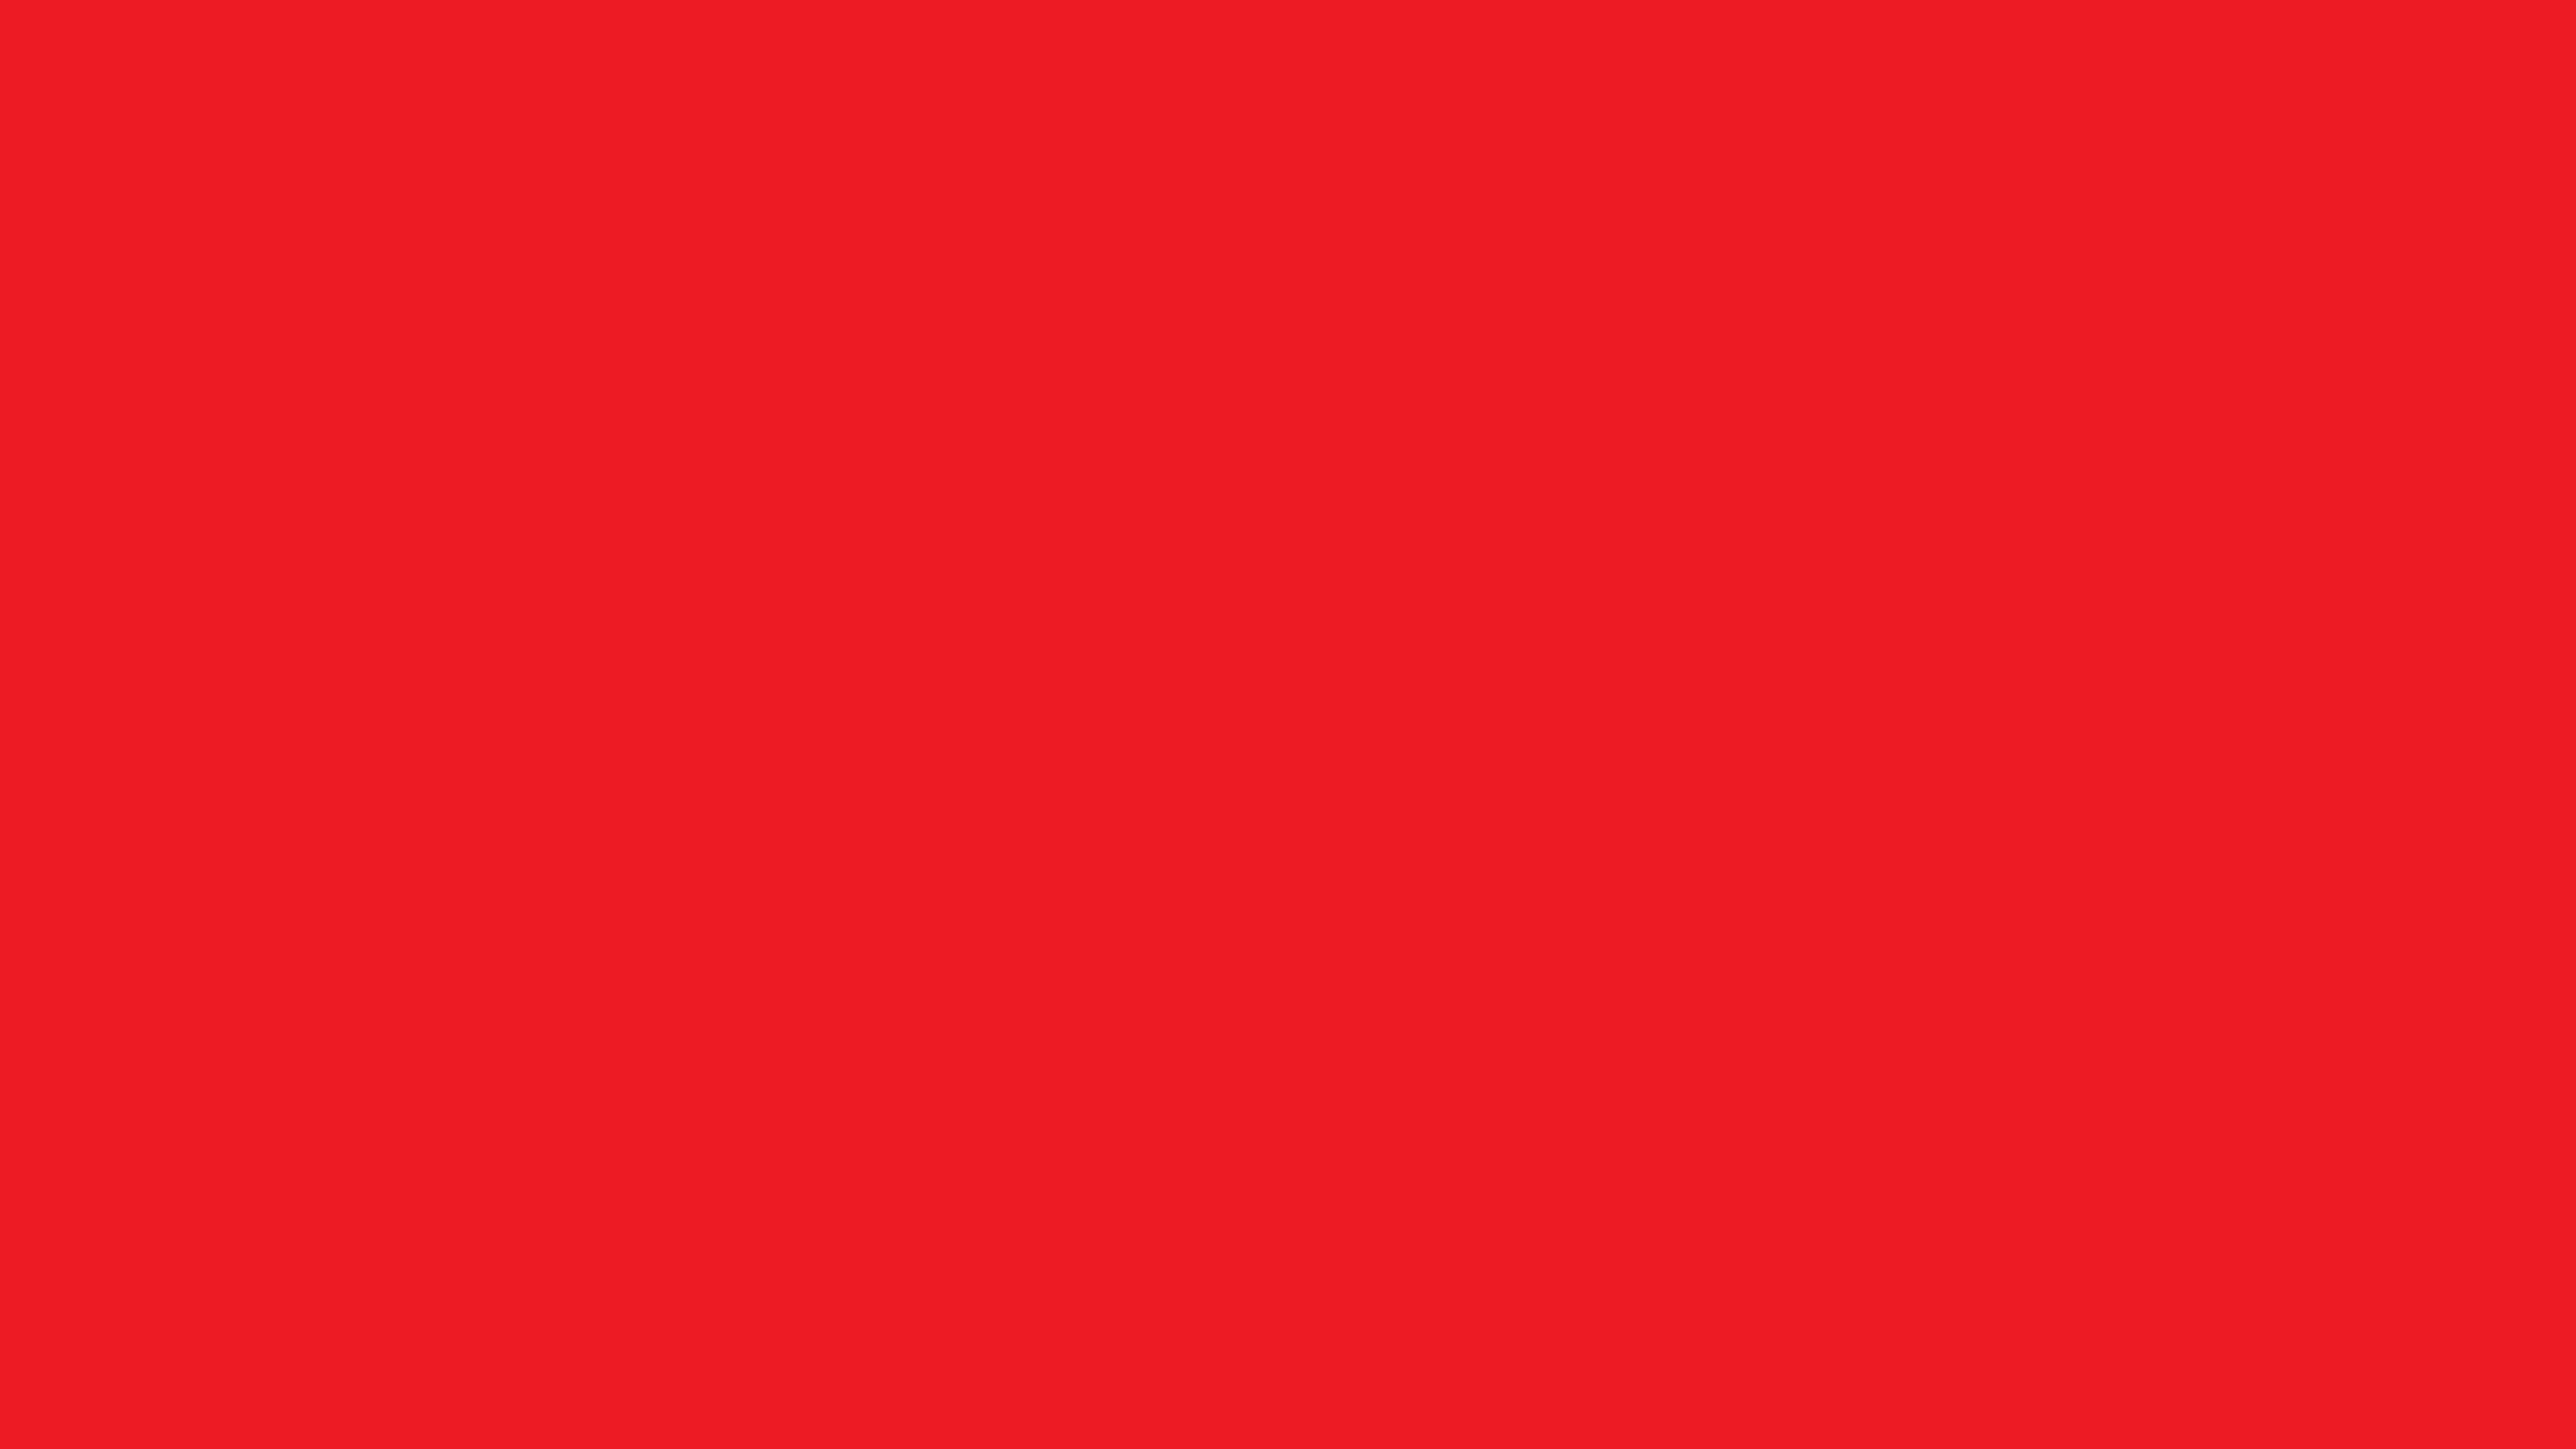 3840x2160 Red Pigment Solid Color Background